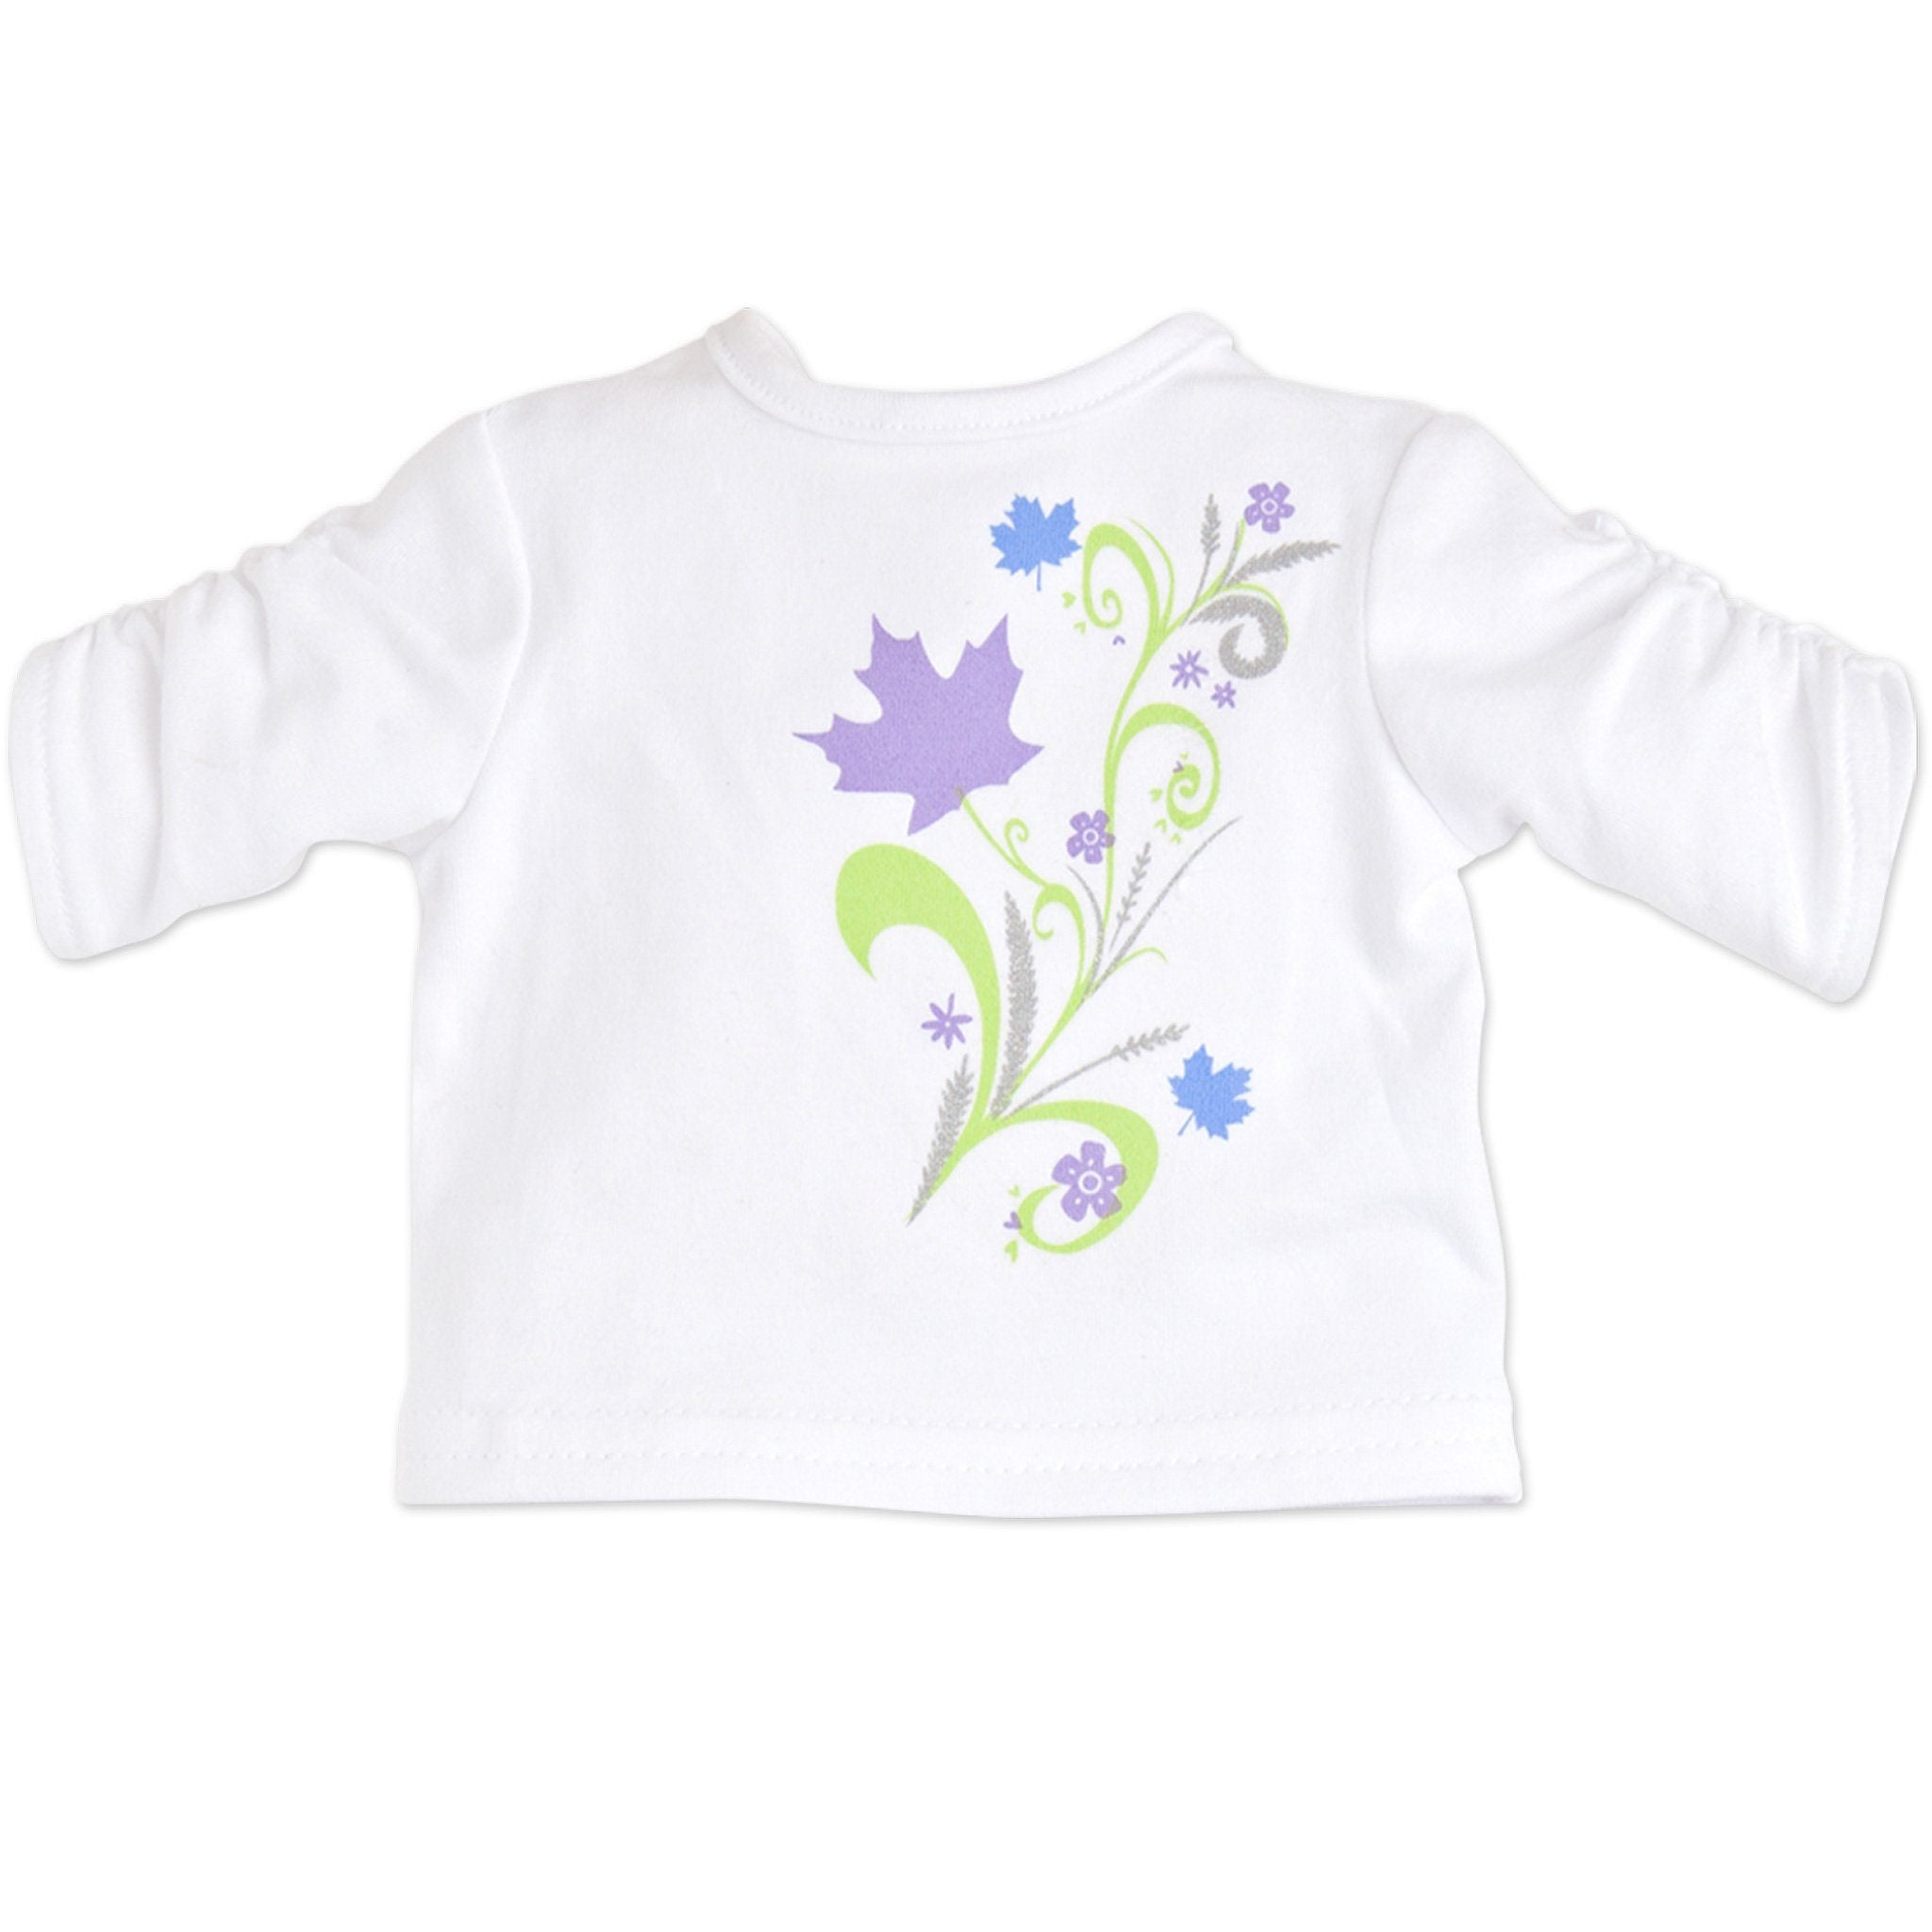 White ruched sleeve shirt with leaf graphic fits all 18 inch dolls.